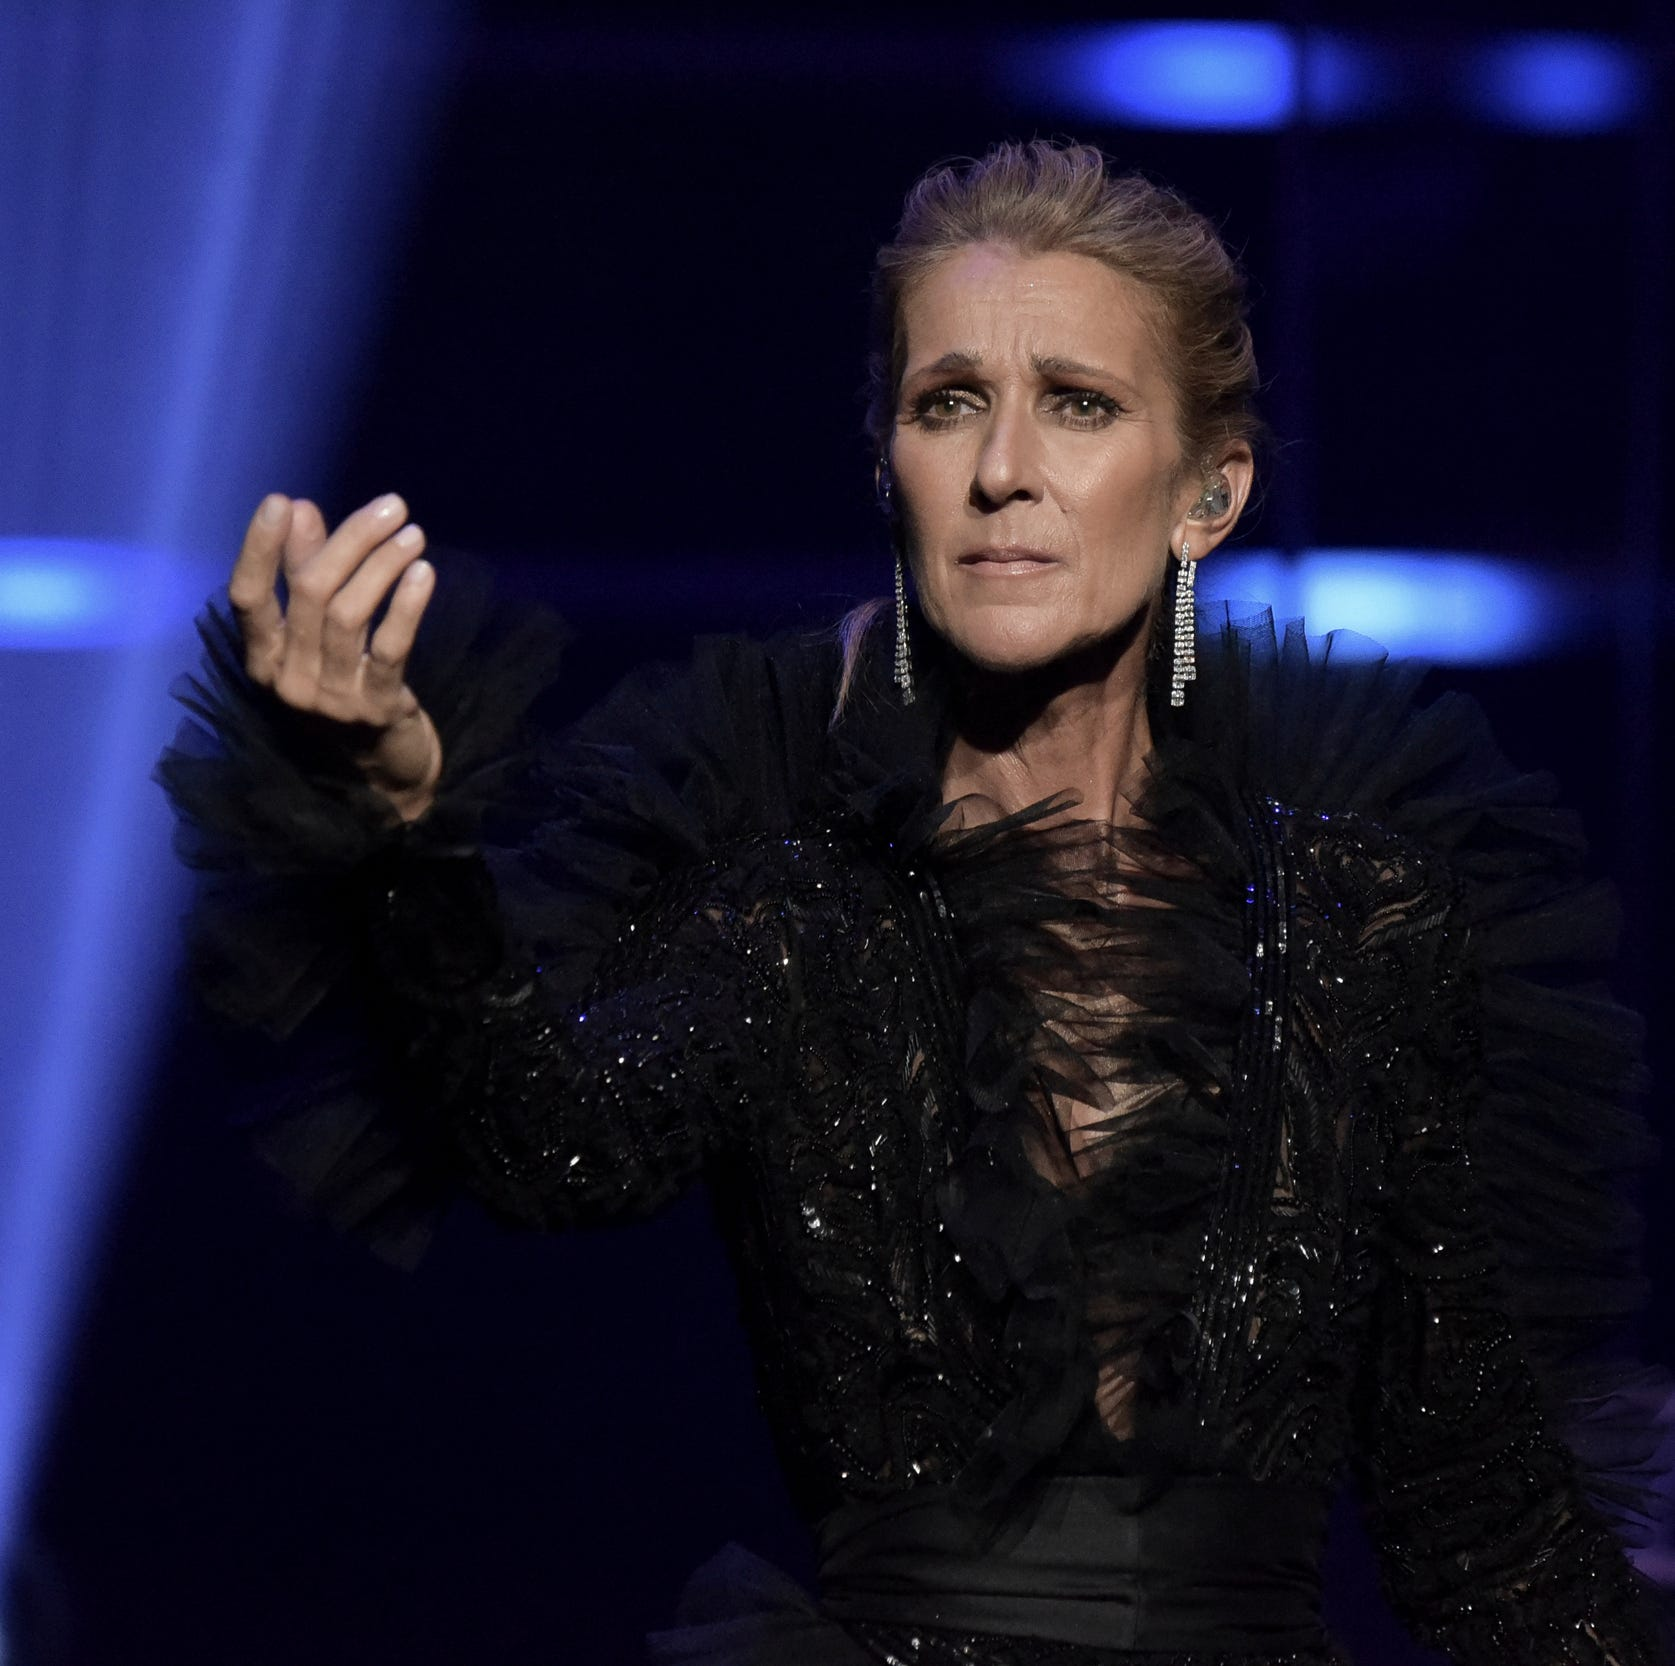 Celine Dion coming to Indianapolis for the 1st time in 11 years